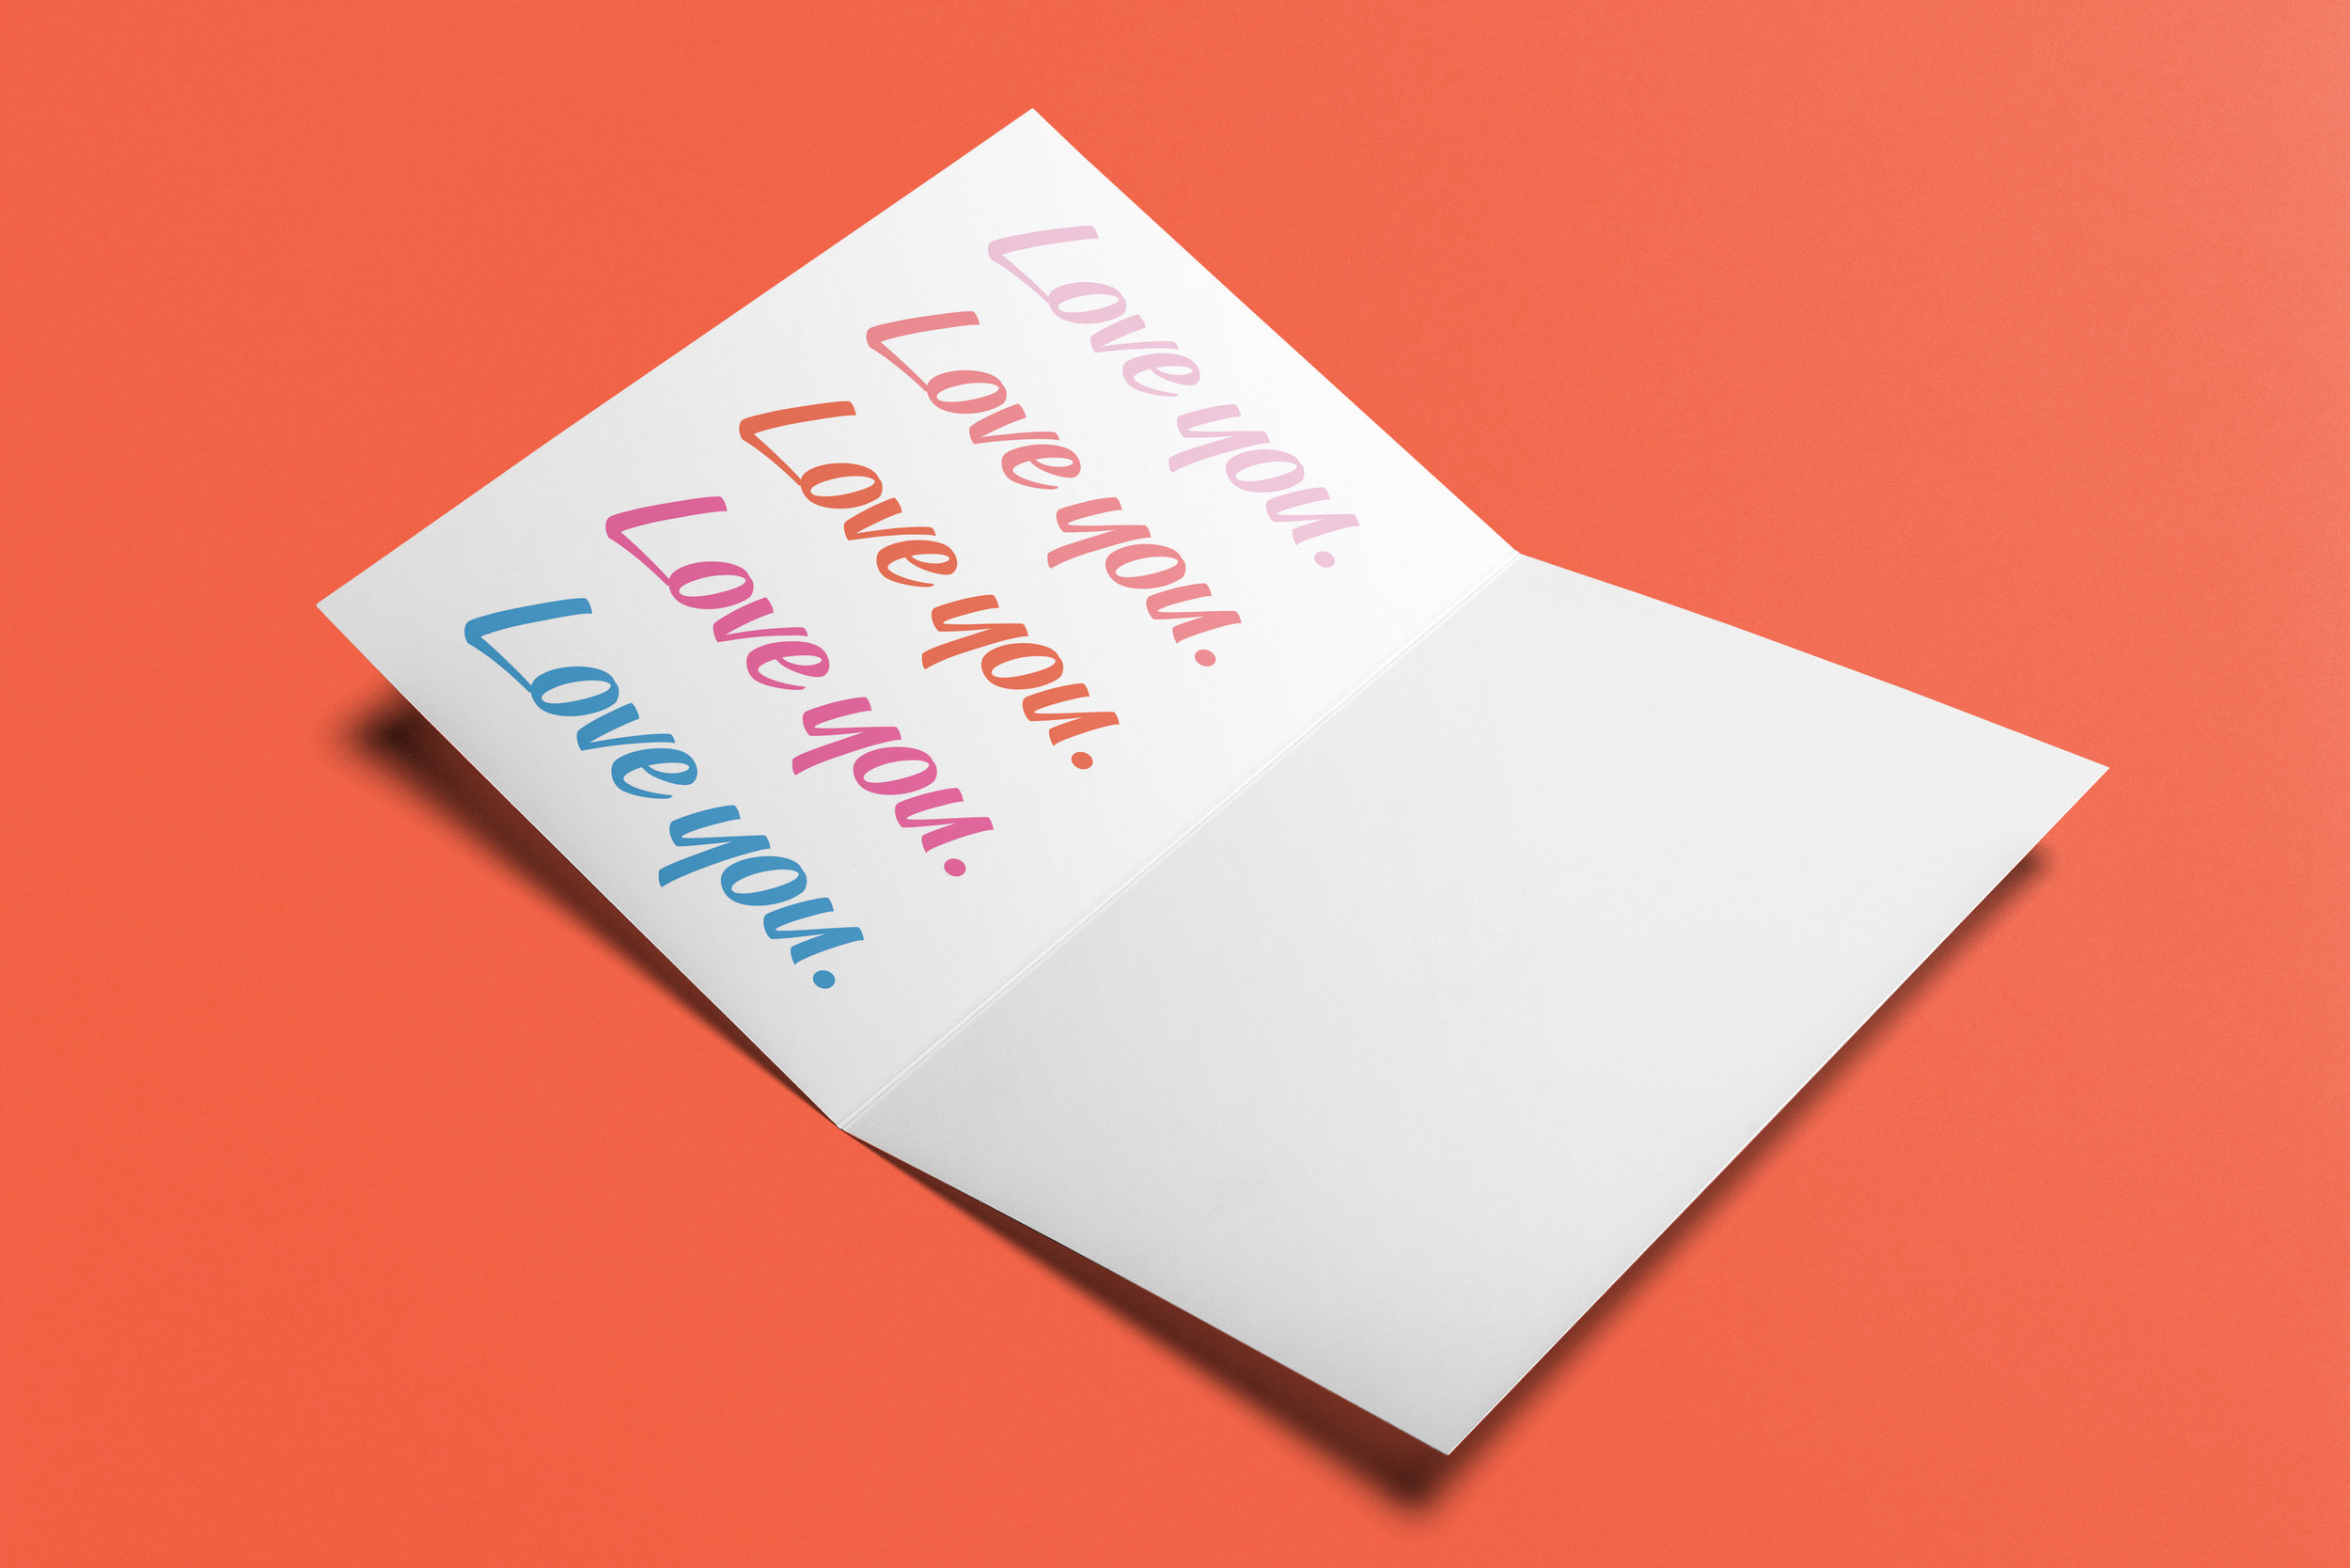 Greetings-card-free-mockup-by-mockupcloud.jpg